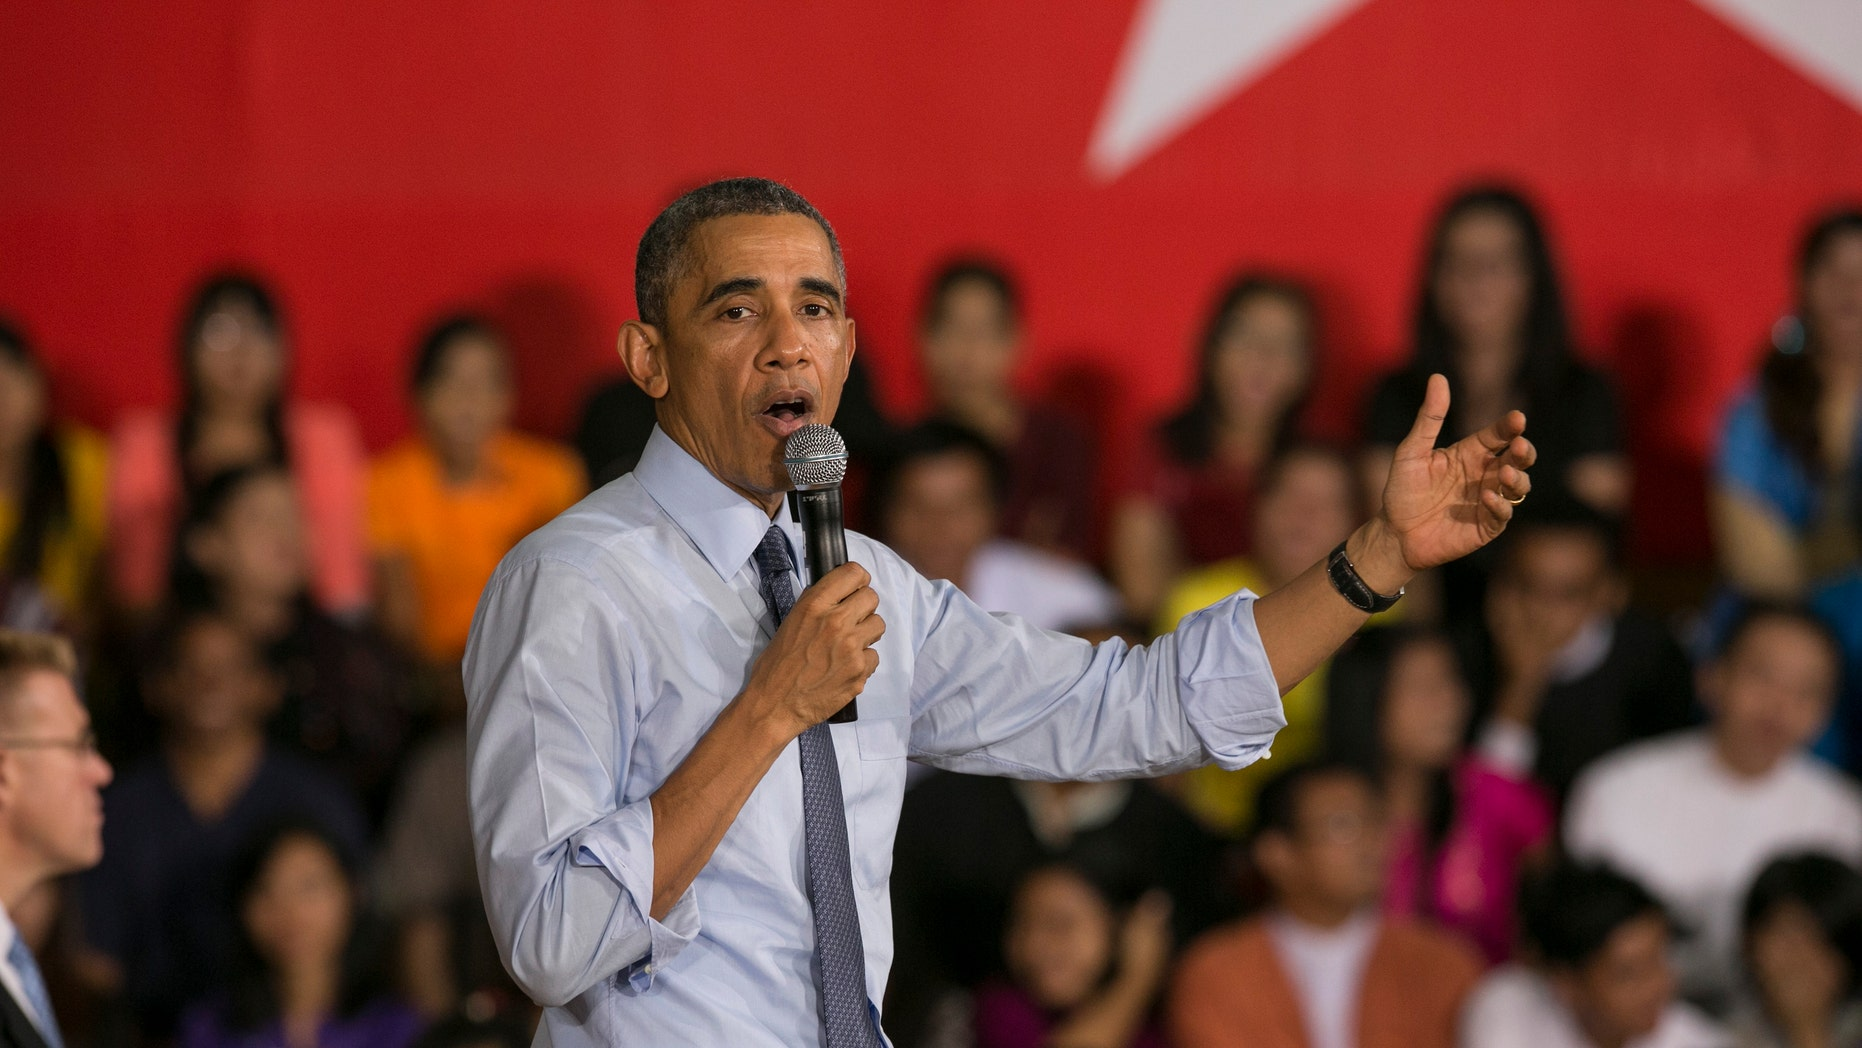 YANGON, BURMA - NOVEMBER 14: U.S President Barak Obama speaks to students after a Young Southeast Asian Leaders Initiative (YSEALI) Town Hall meeting on November 14, 2014 in Yangon, Burma. Obama spends one day in Yangon speaking at Yangon University and meeting with Aung San Suu Kyi before departing to Australia for the G20 Summit this evening. (Photo by Paula Bronstein/Getty Images)